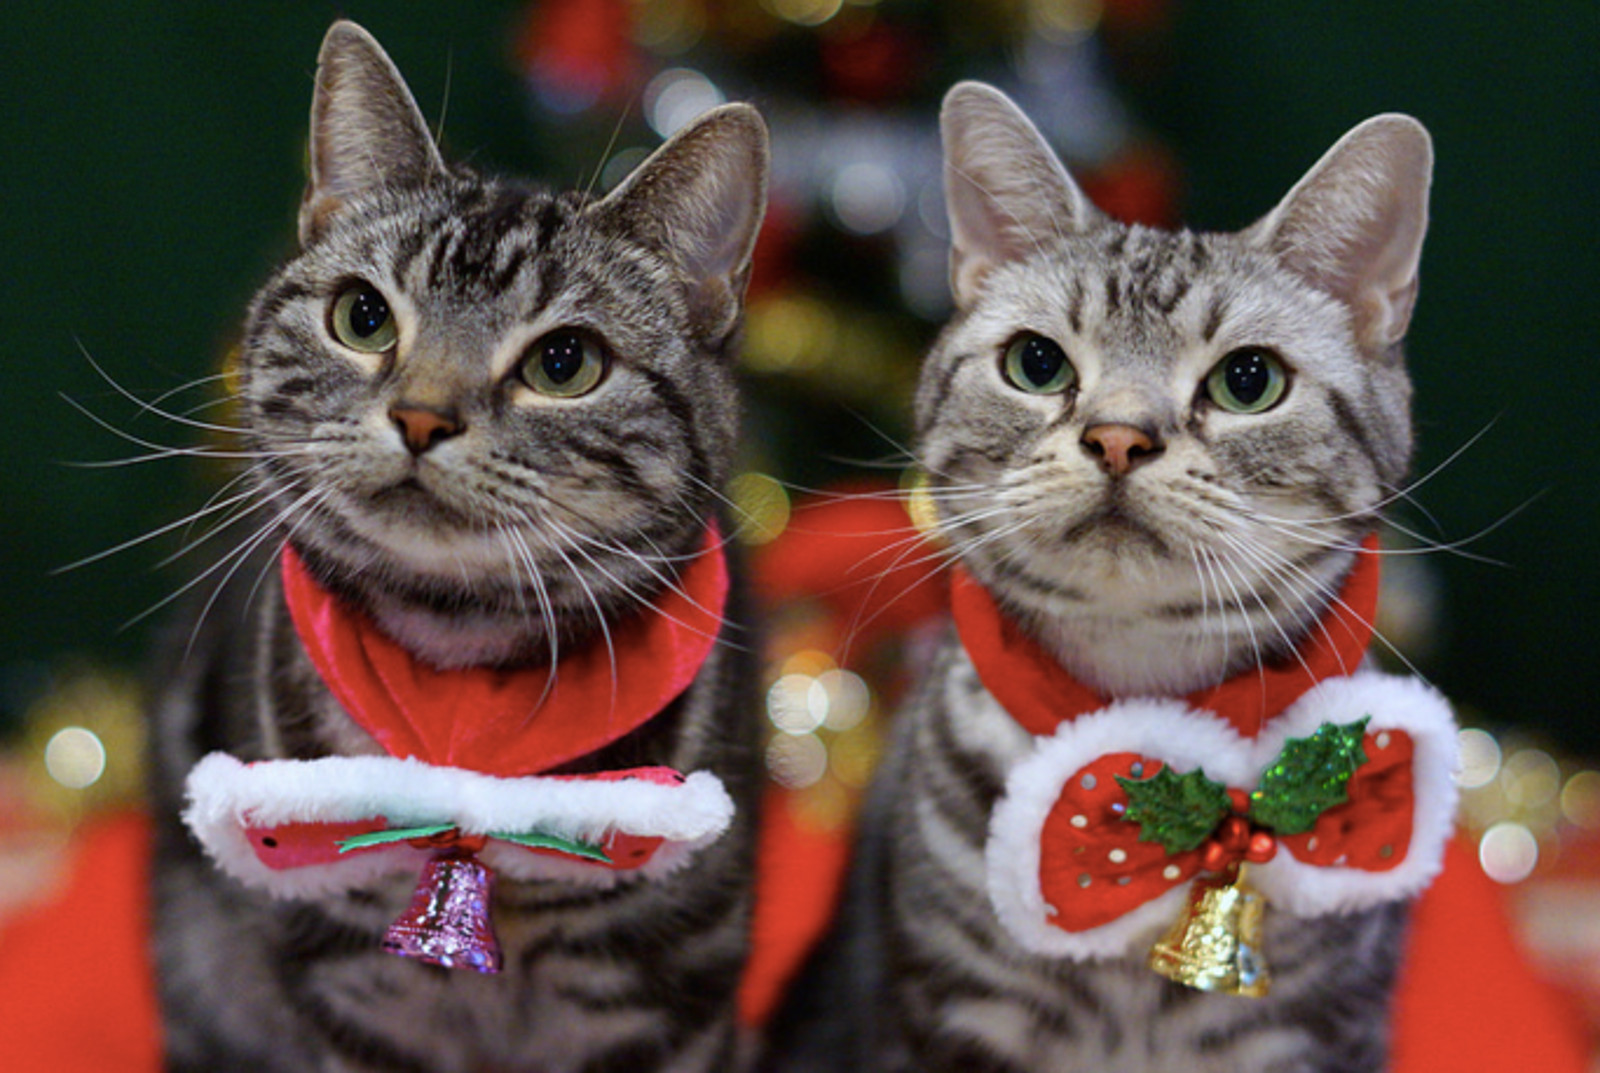 A Guide to Keeping Your Pets Safe This Holiday Season